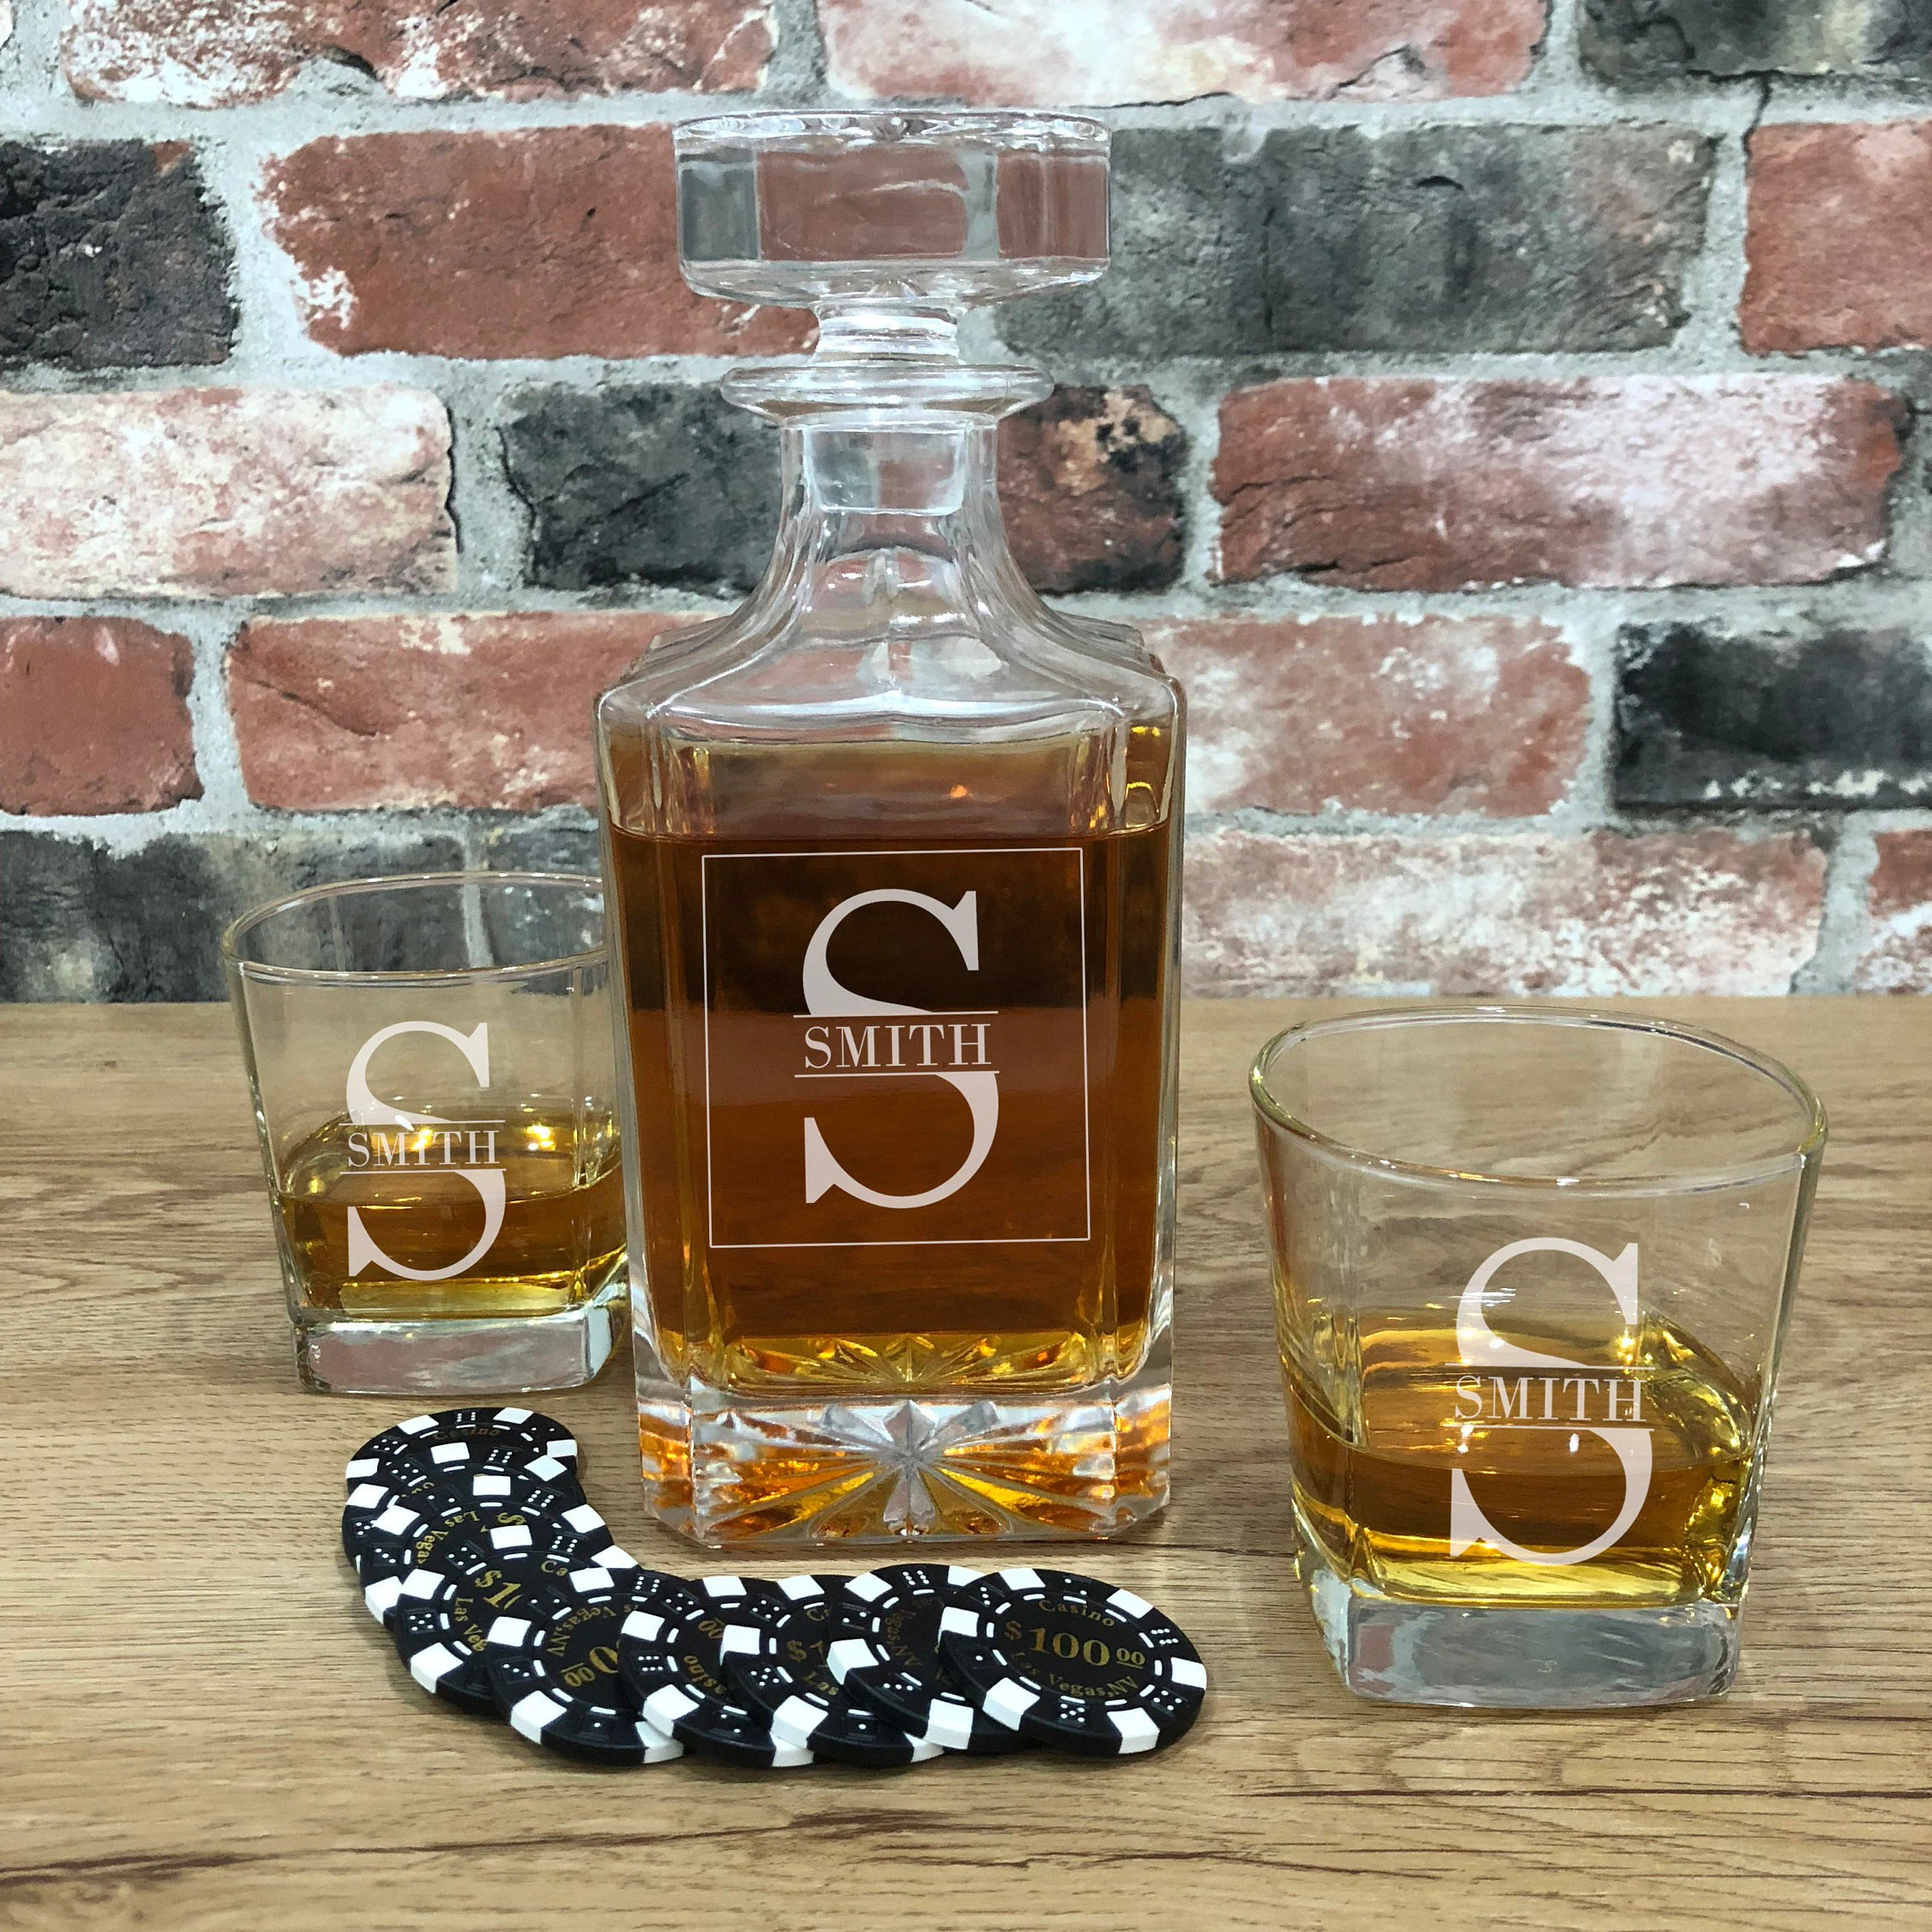 Whiskey Set Whiskey Decanter Set Groomsmen Decanter Customized Decanter Decanter Set Whiskey Glasses Whiskey Gift Whiskey Set